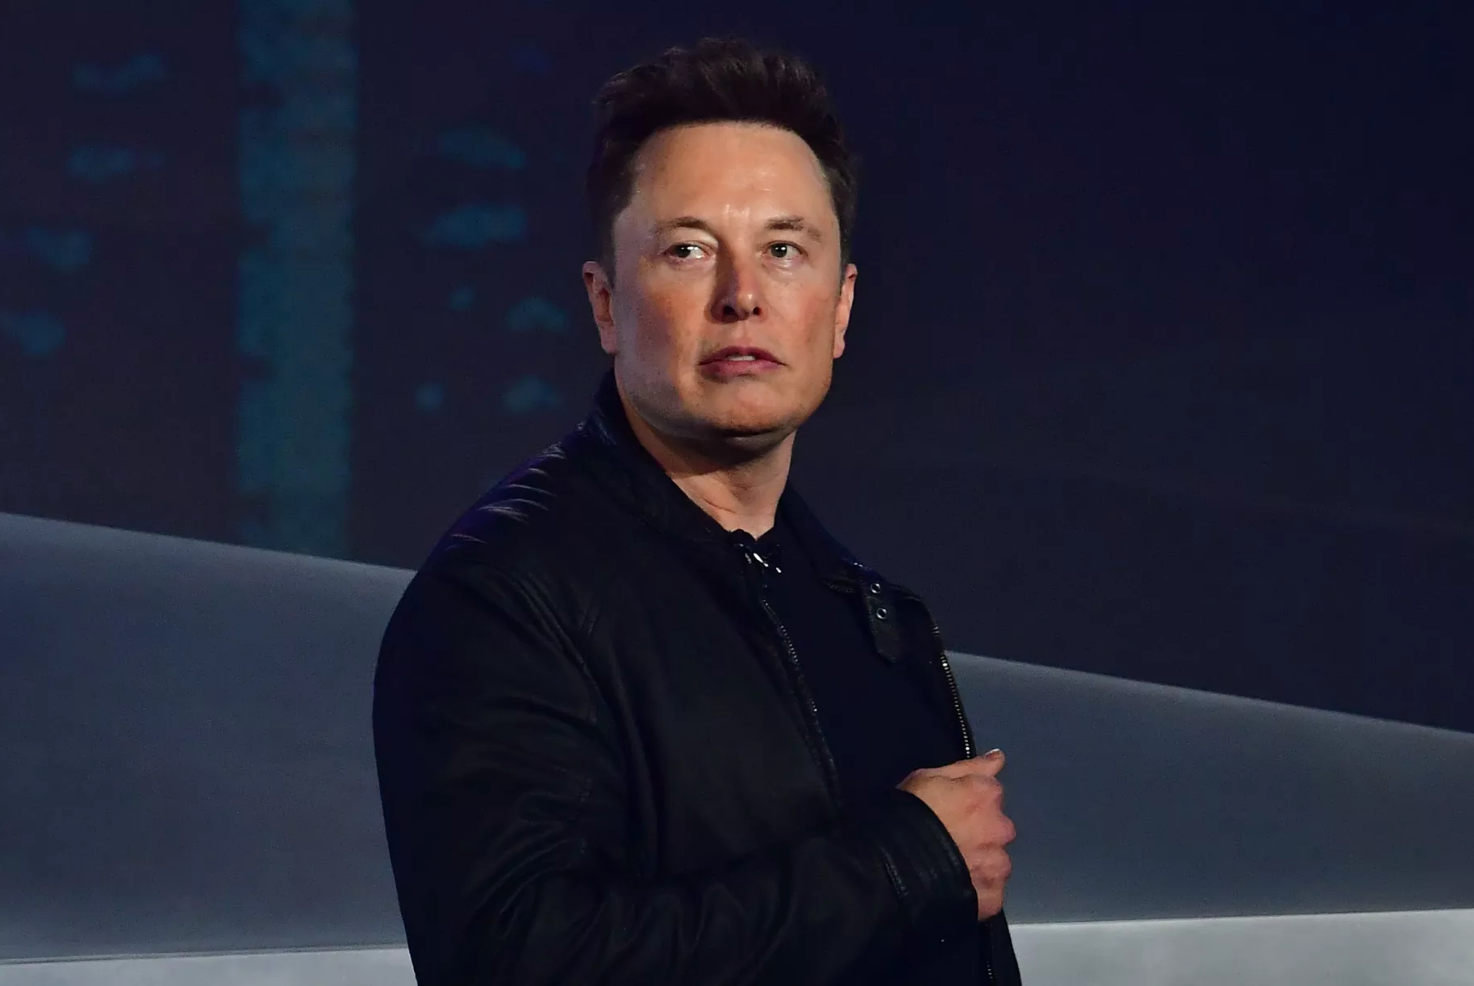 Elon Musk says shelter-in-place orders during COVID-19 are 'fascist'